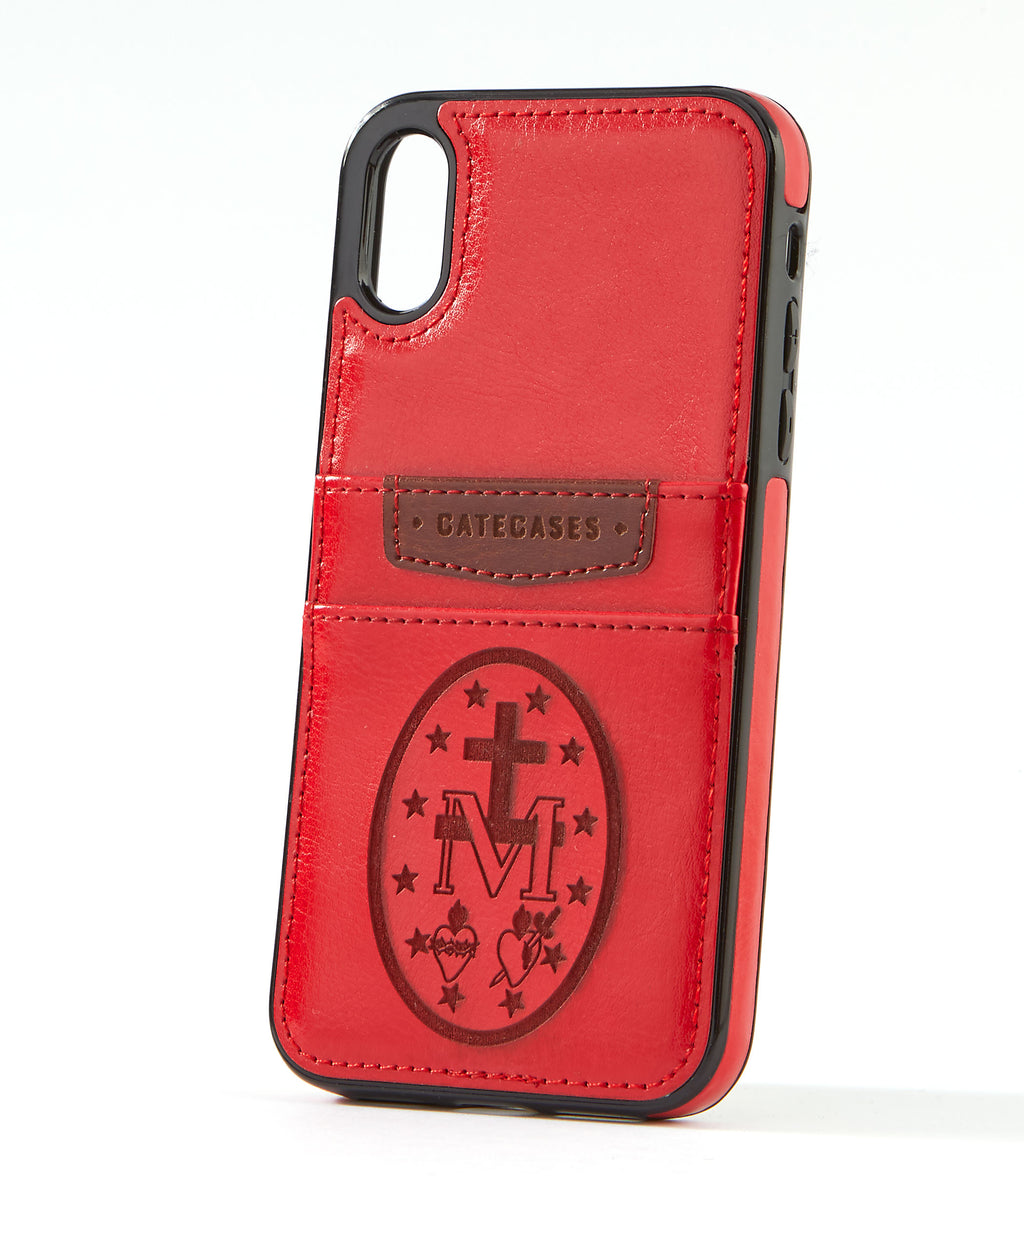 Miraculous Medal Red Leather Card Case for iPhone XR